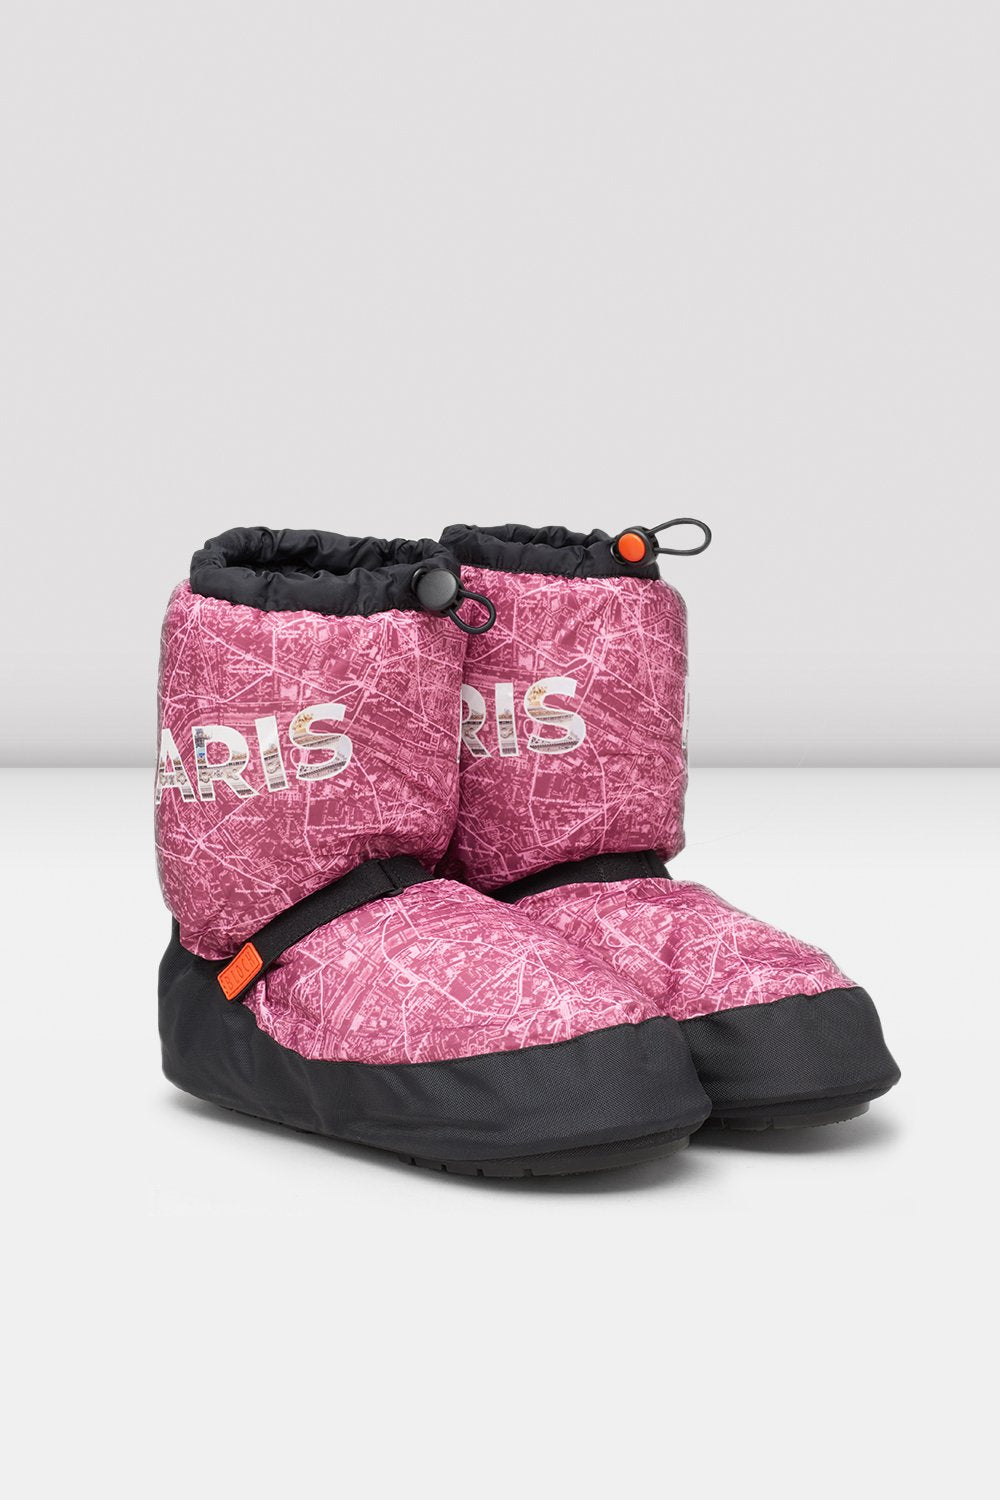 Paris City Map Multi-function Warm Up Booties - BLOCH US